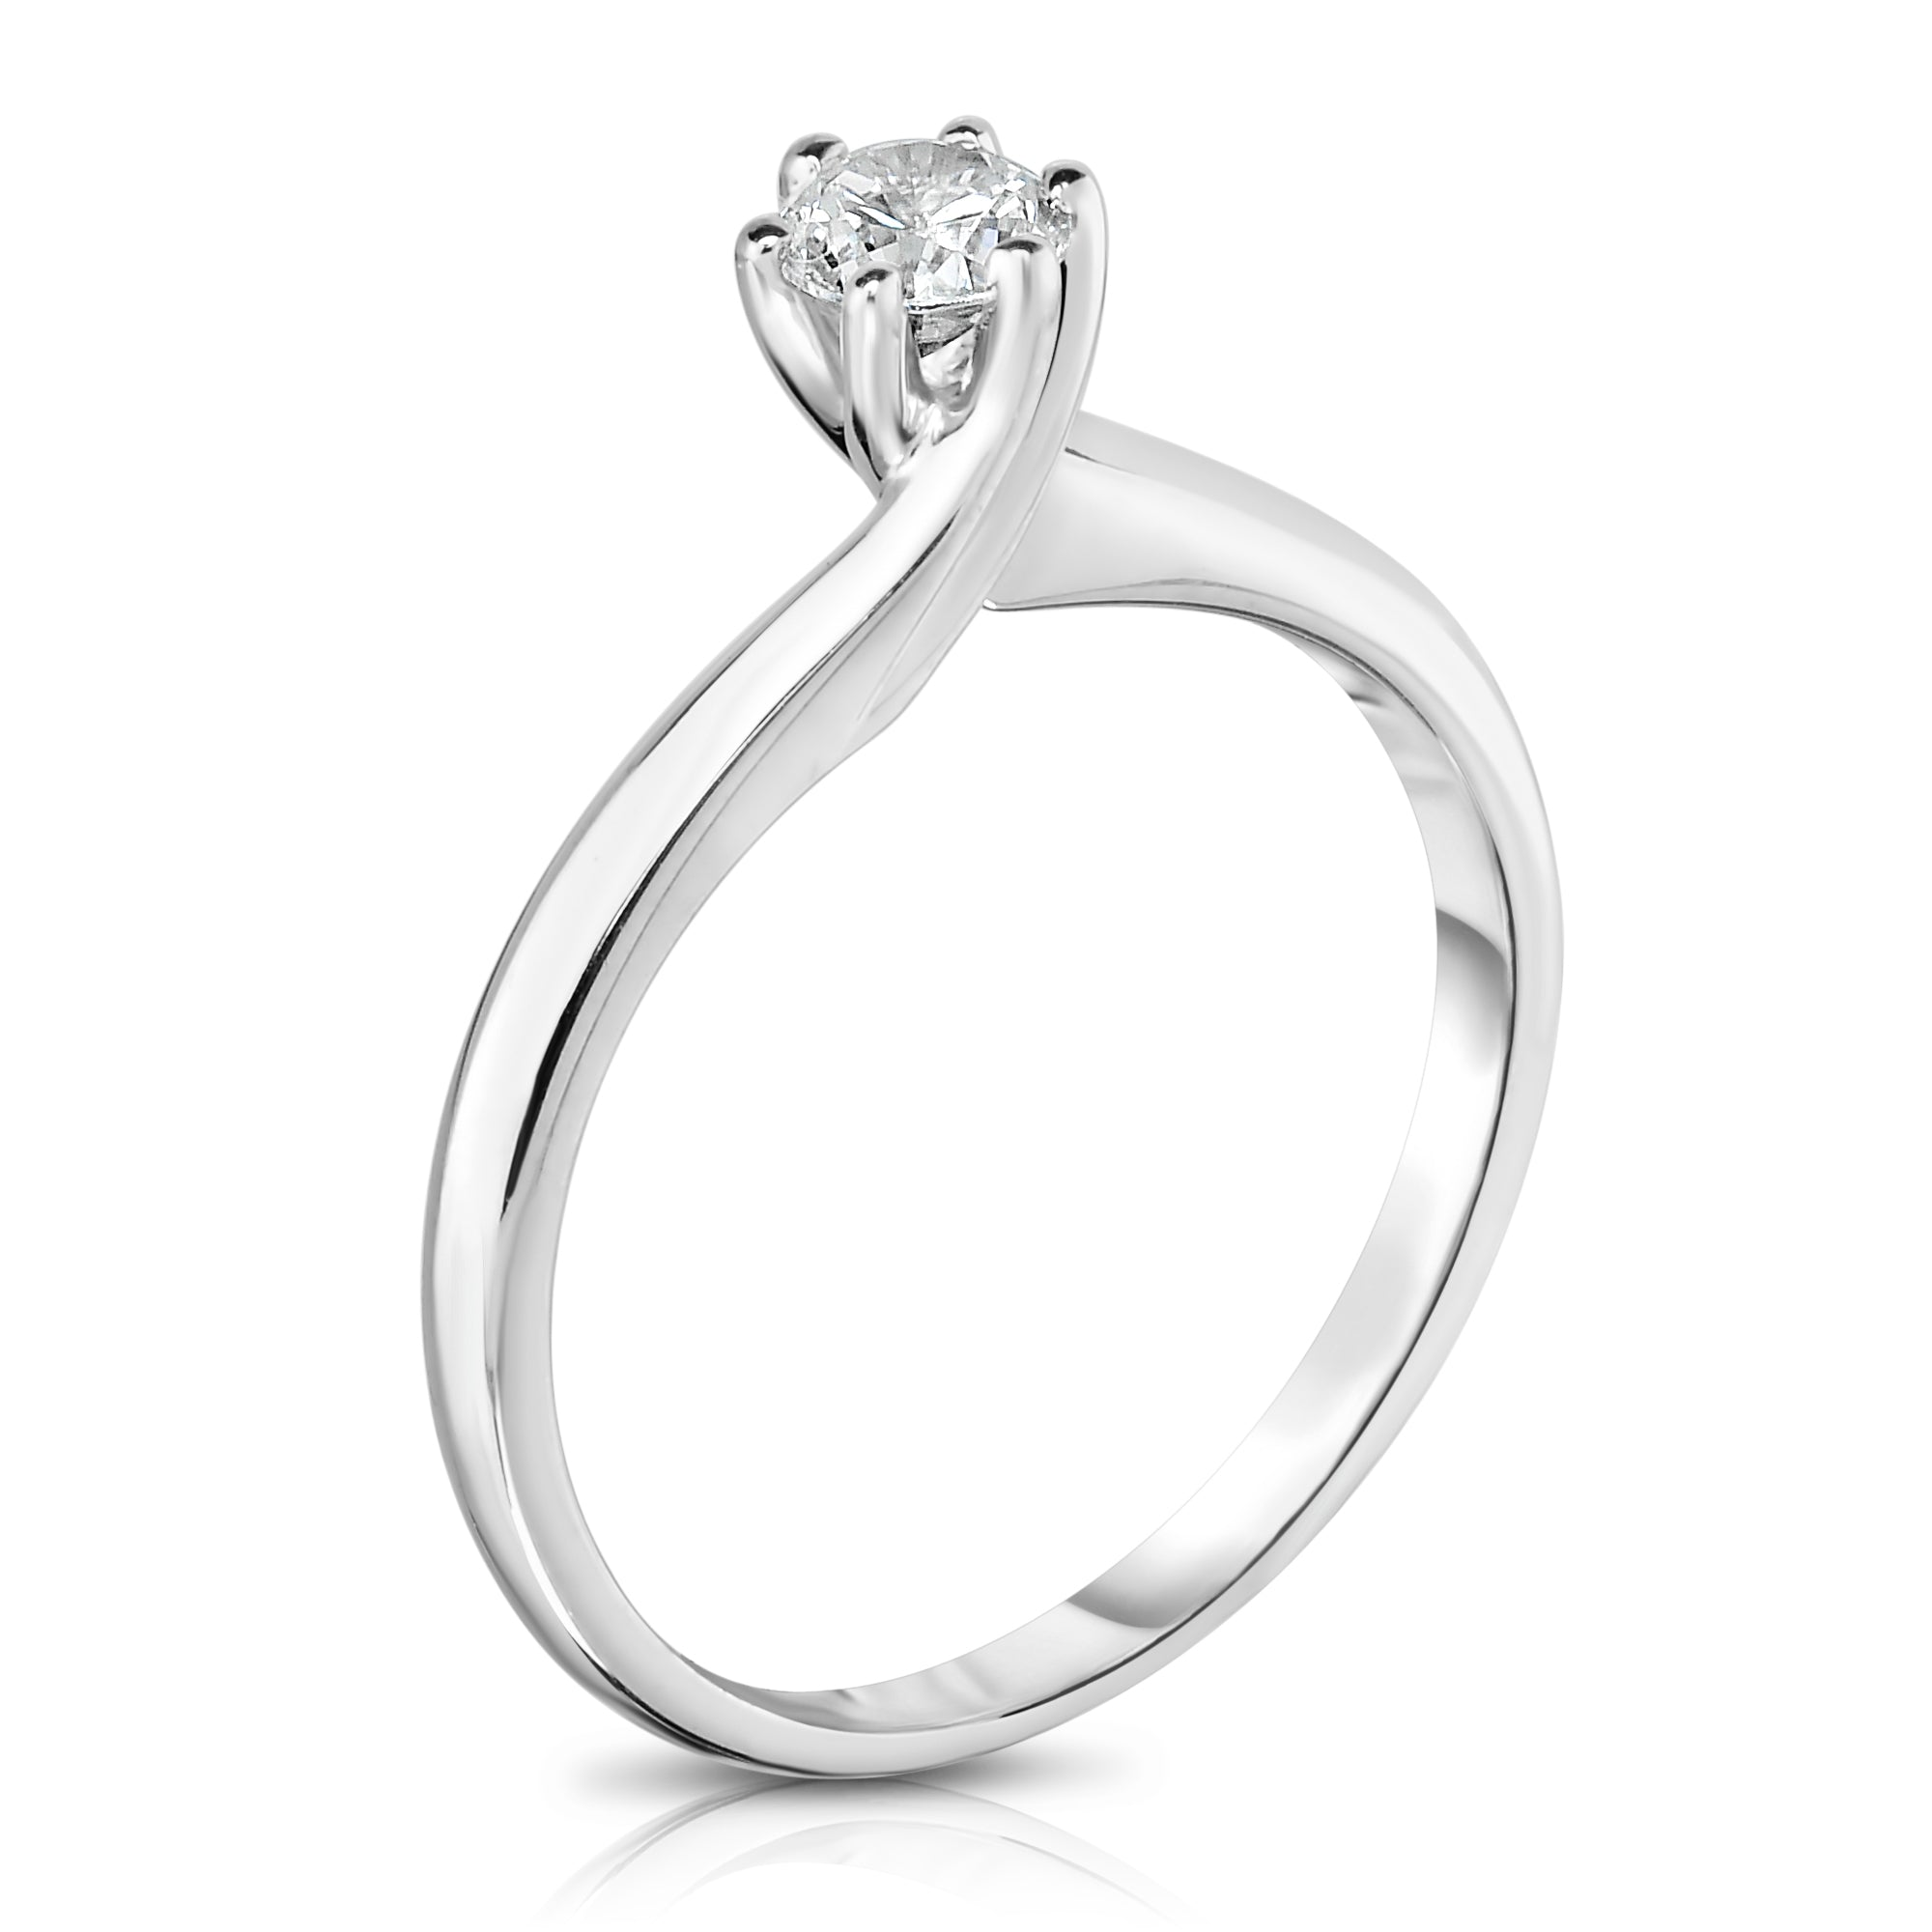 ip walmart rings engagement diamond gold t prong ring halo w miabella white com carat